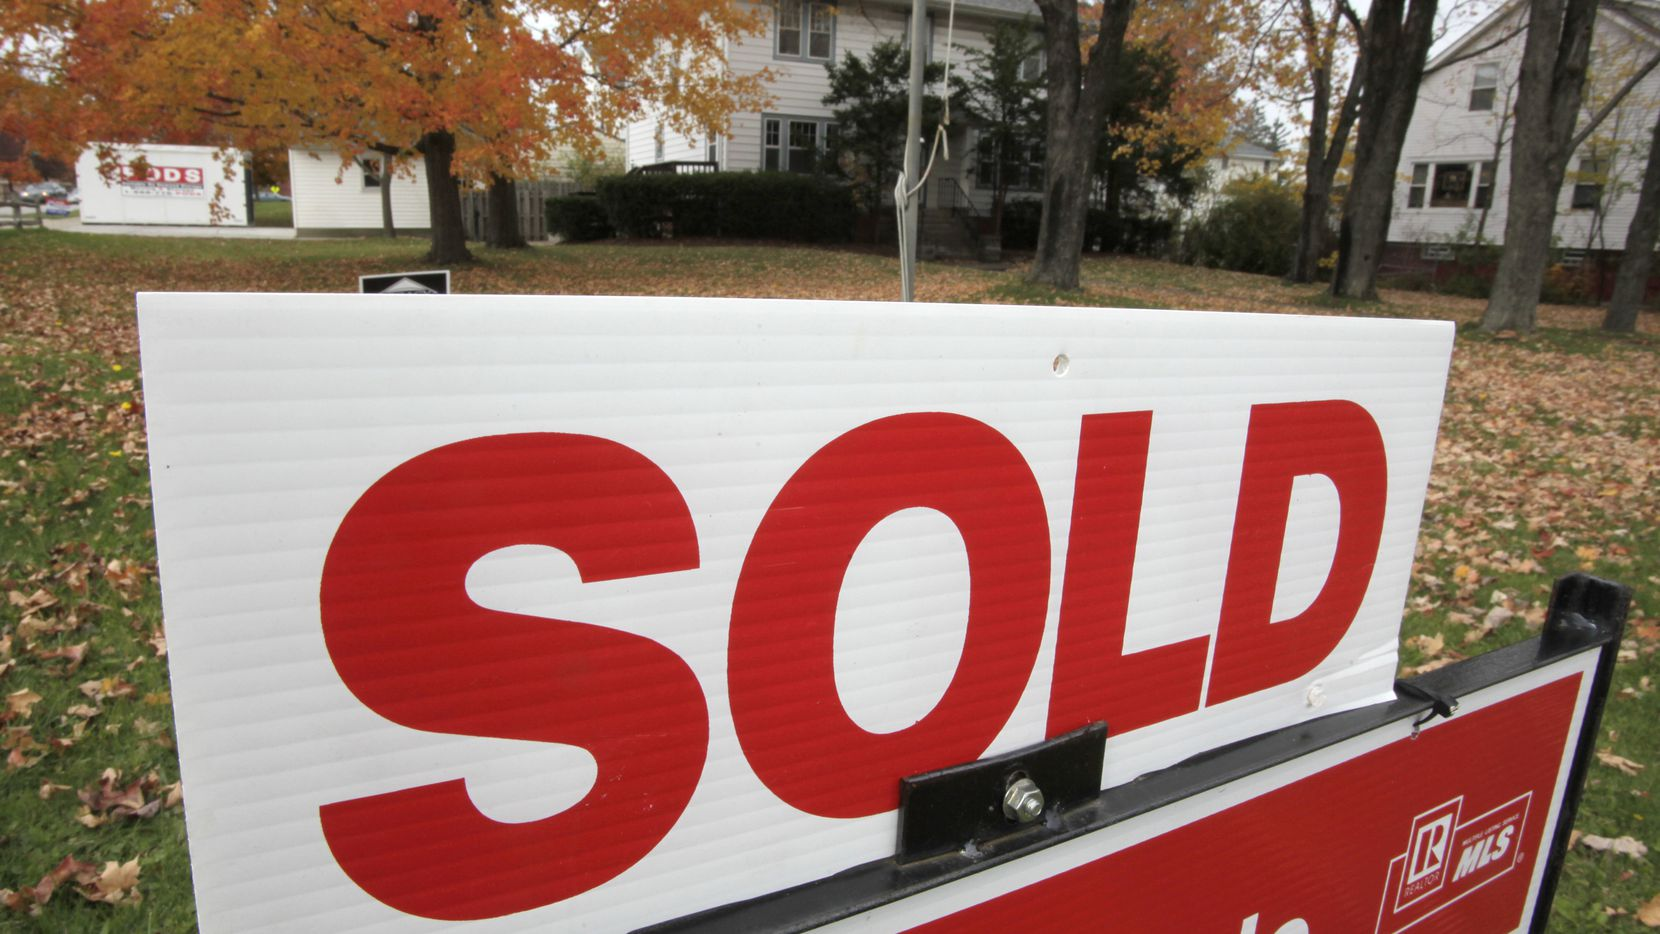 The Dallas-area was the leading home market out of 100 major cities Freddie Mac surveys.